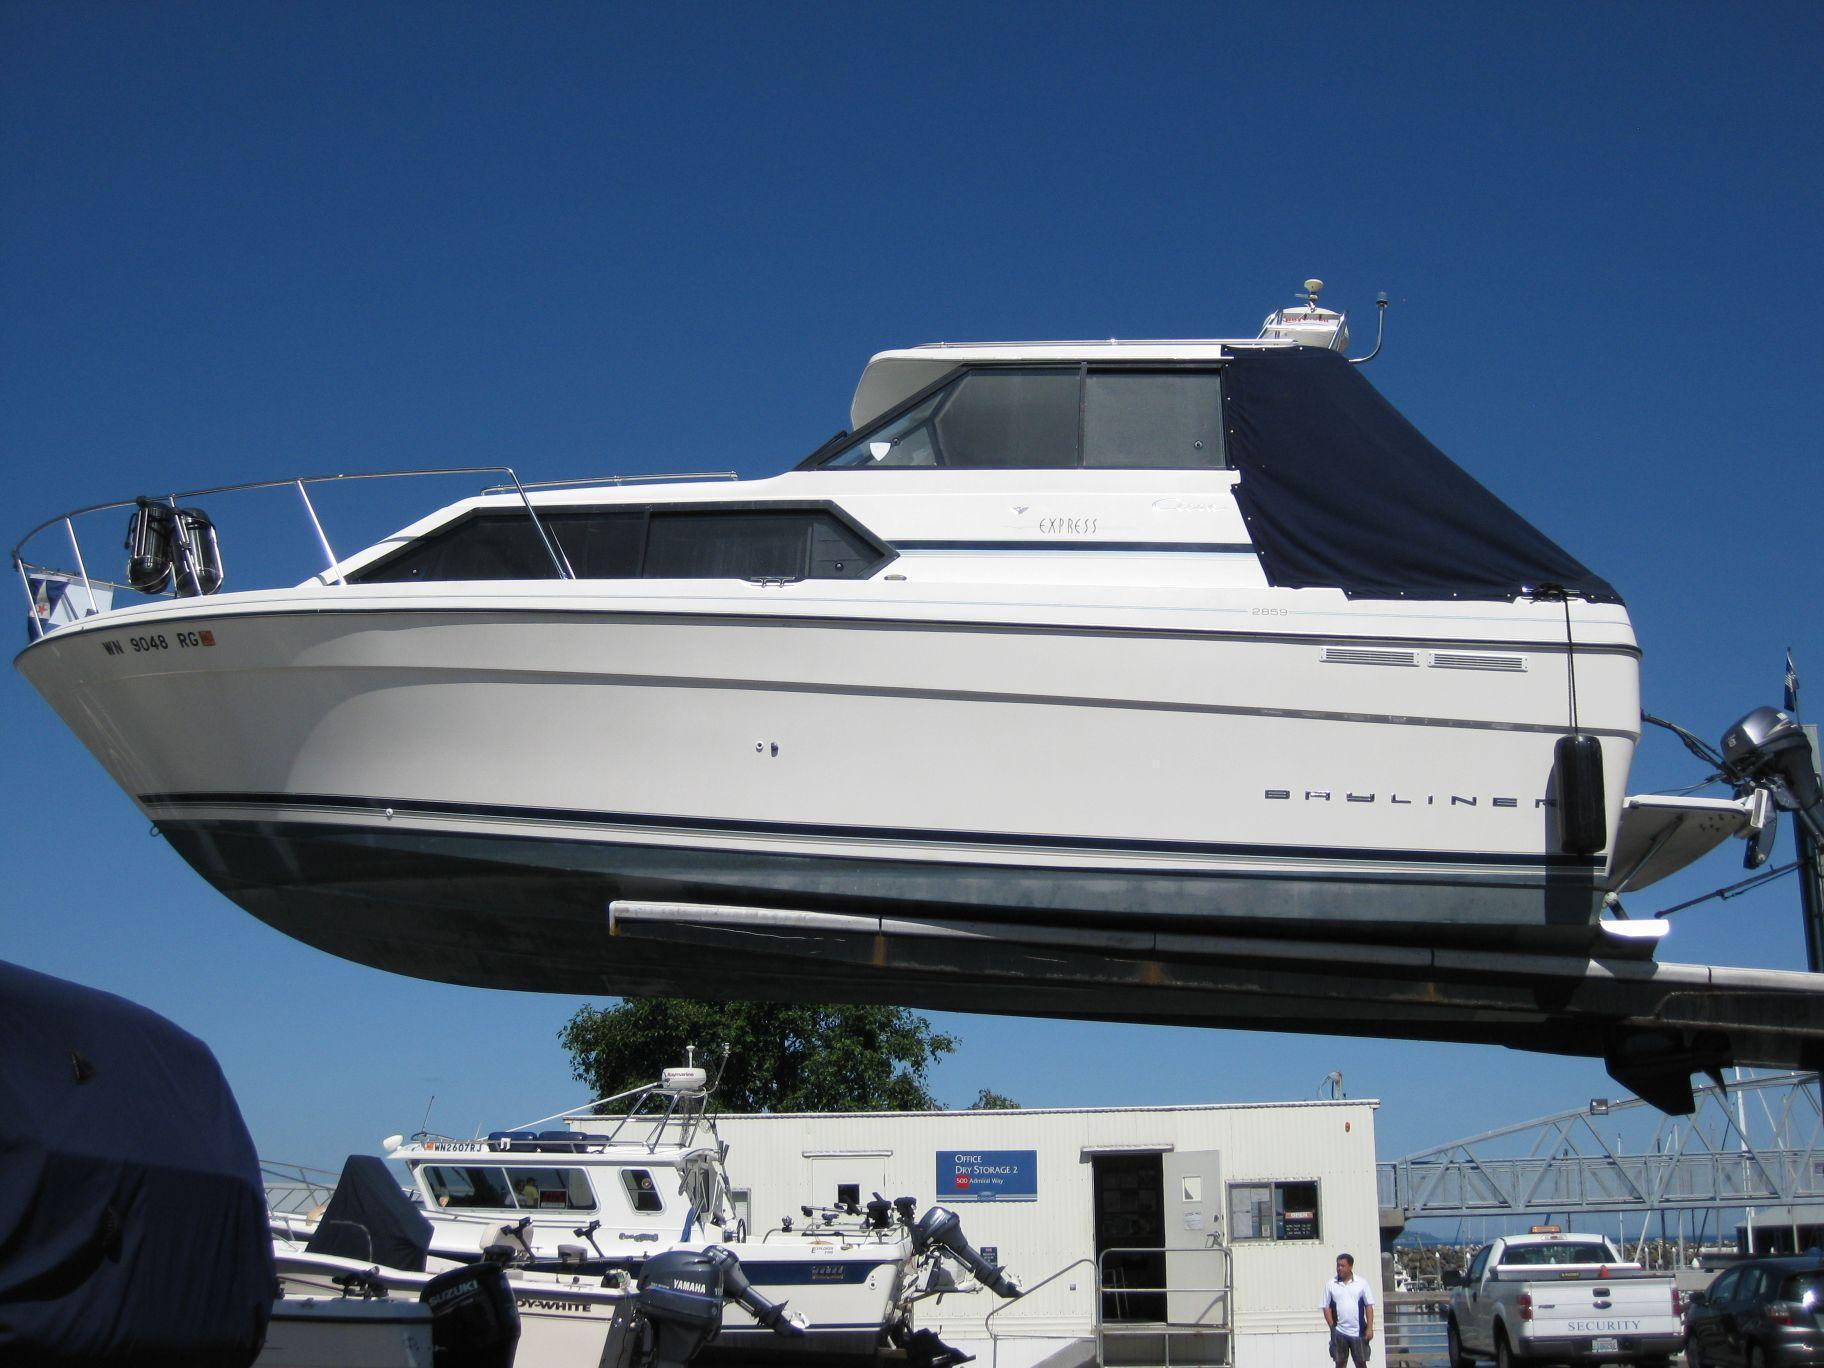 Bayliner 2859 Classic Cruiser, Edmonds